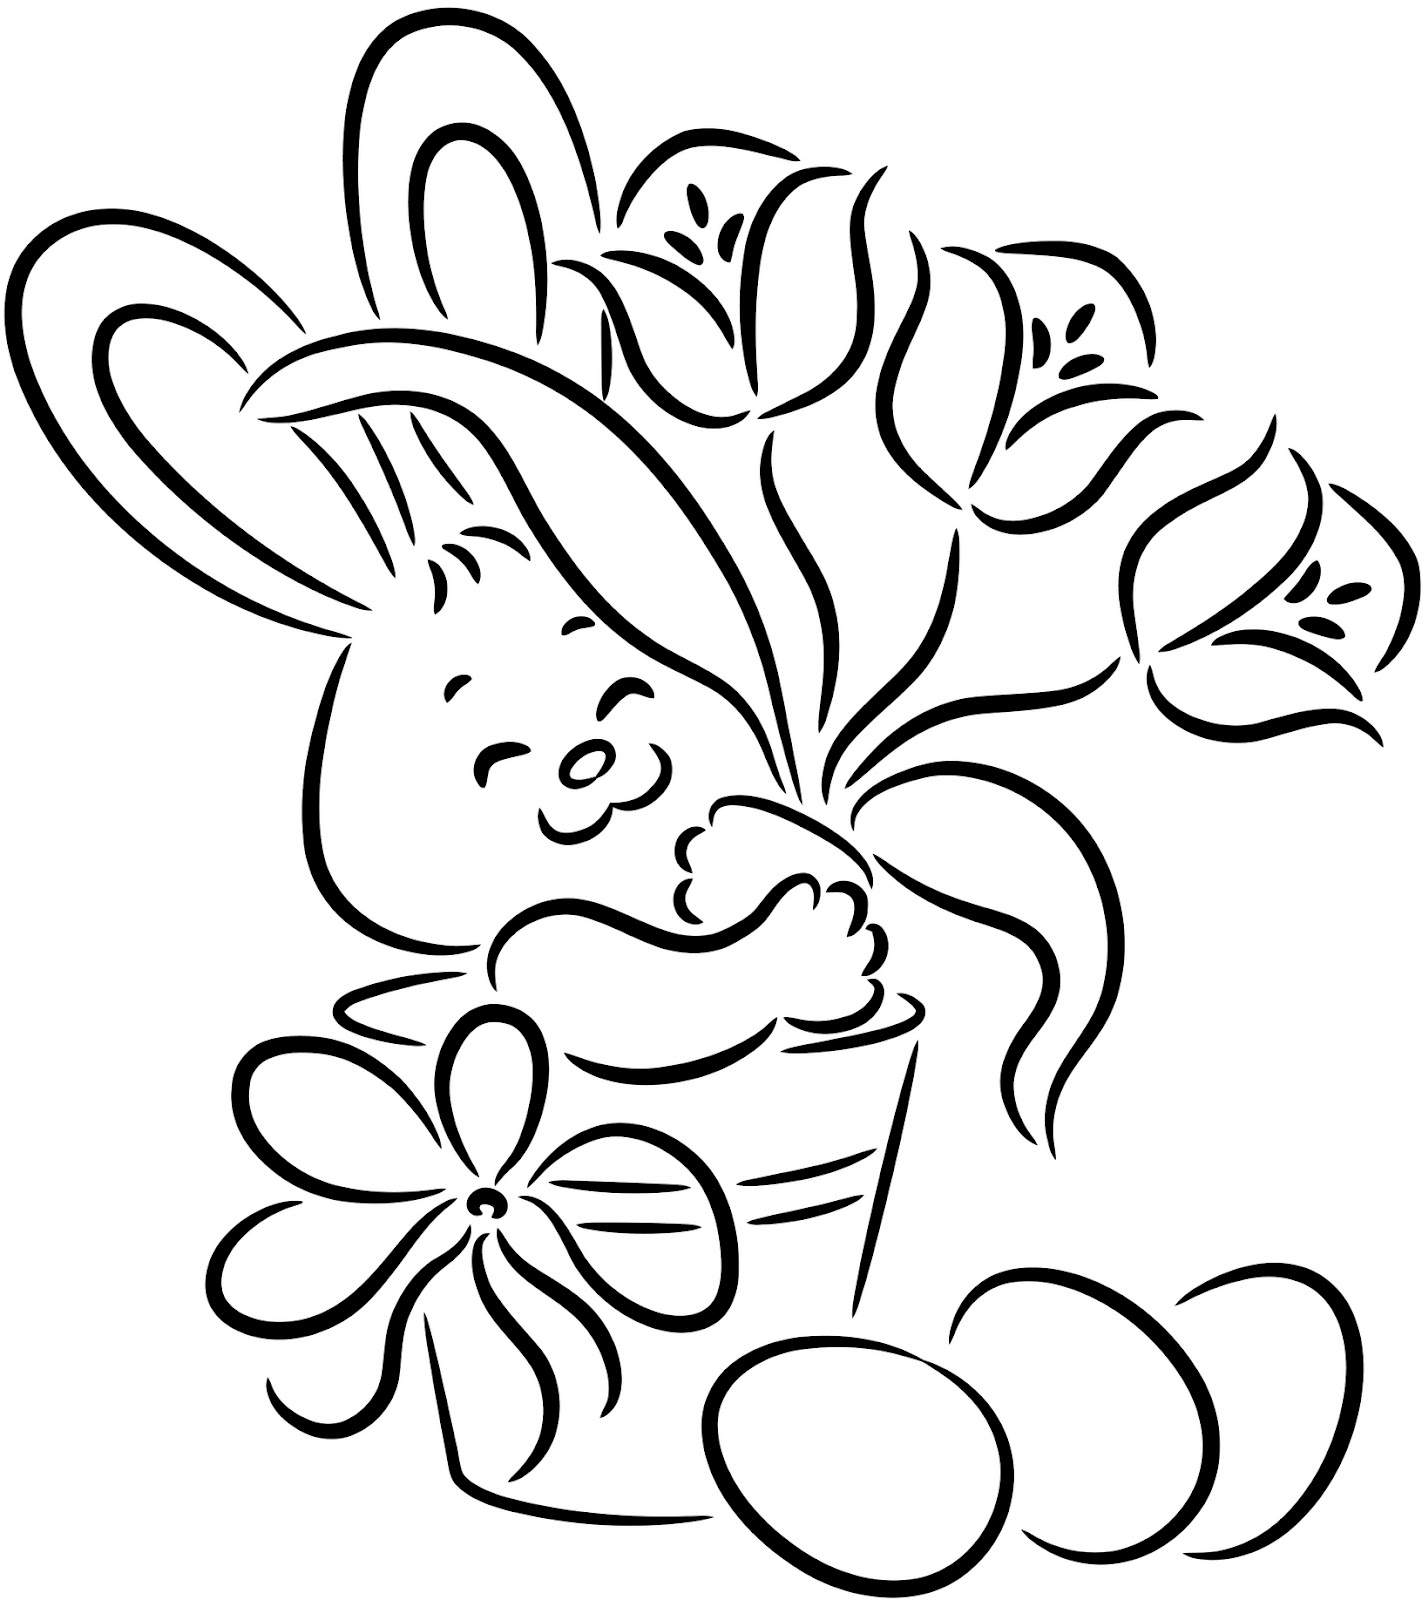 kids easter colouring pages free easter printable coloring pages for kids easter pages colouring kids easter